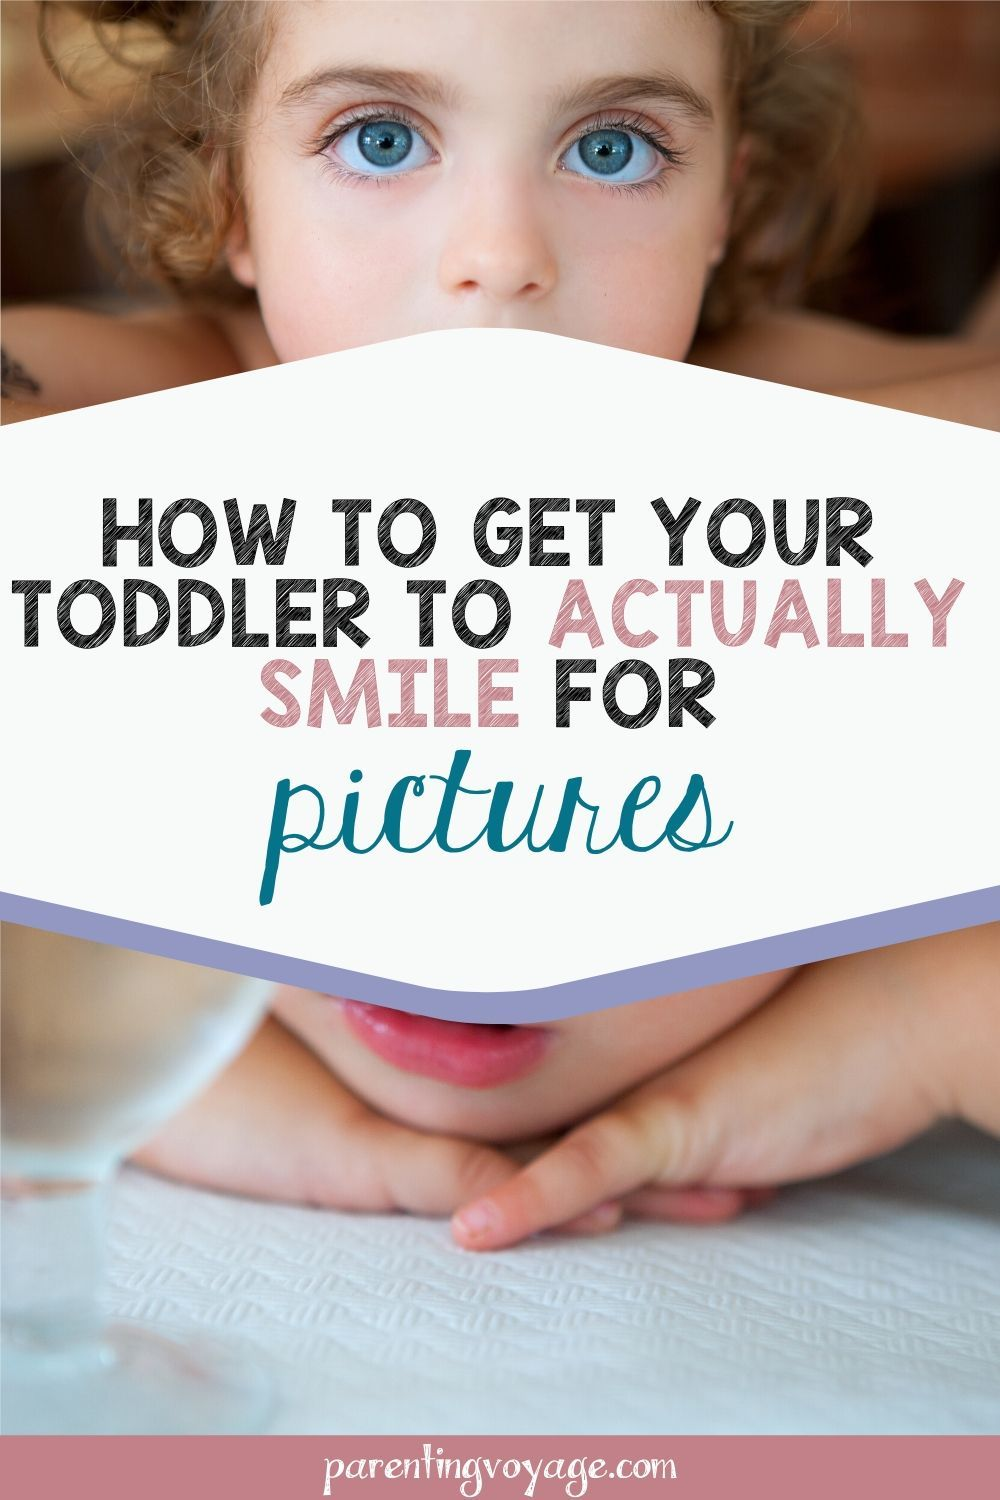 3ac9cb792b87fcc8bd993ec736391c92 - How To Get A Toddler To Smile For Pictures